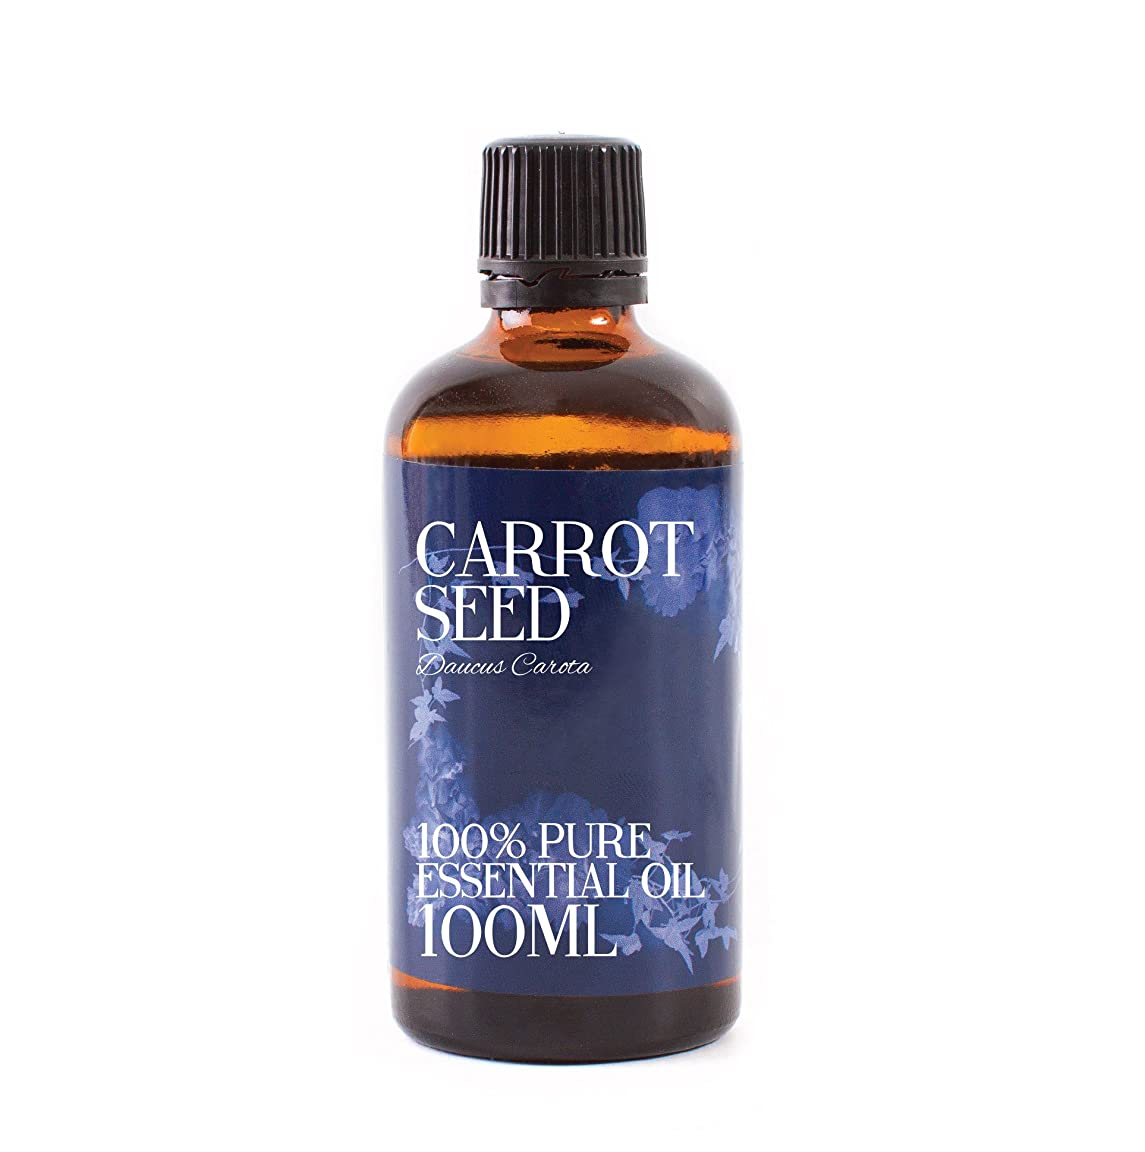 征服する赤道ありふれたMystic Moments | Carrot Seed Essential Oil - 100ml - 100% Pure